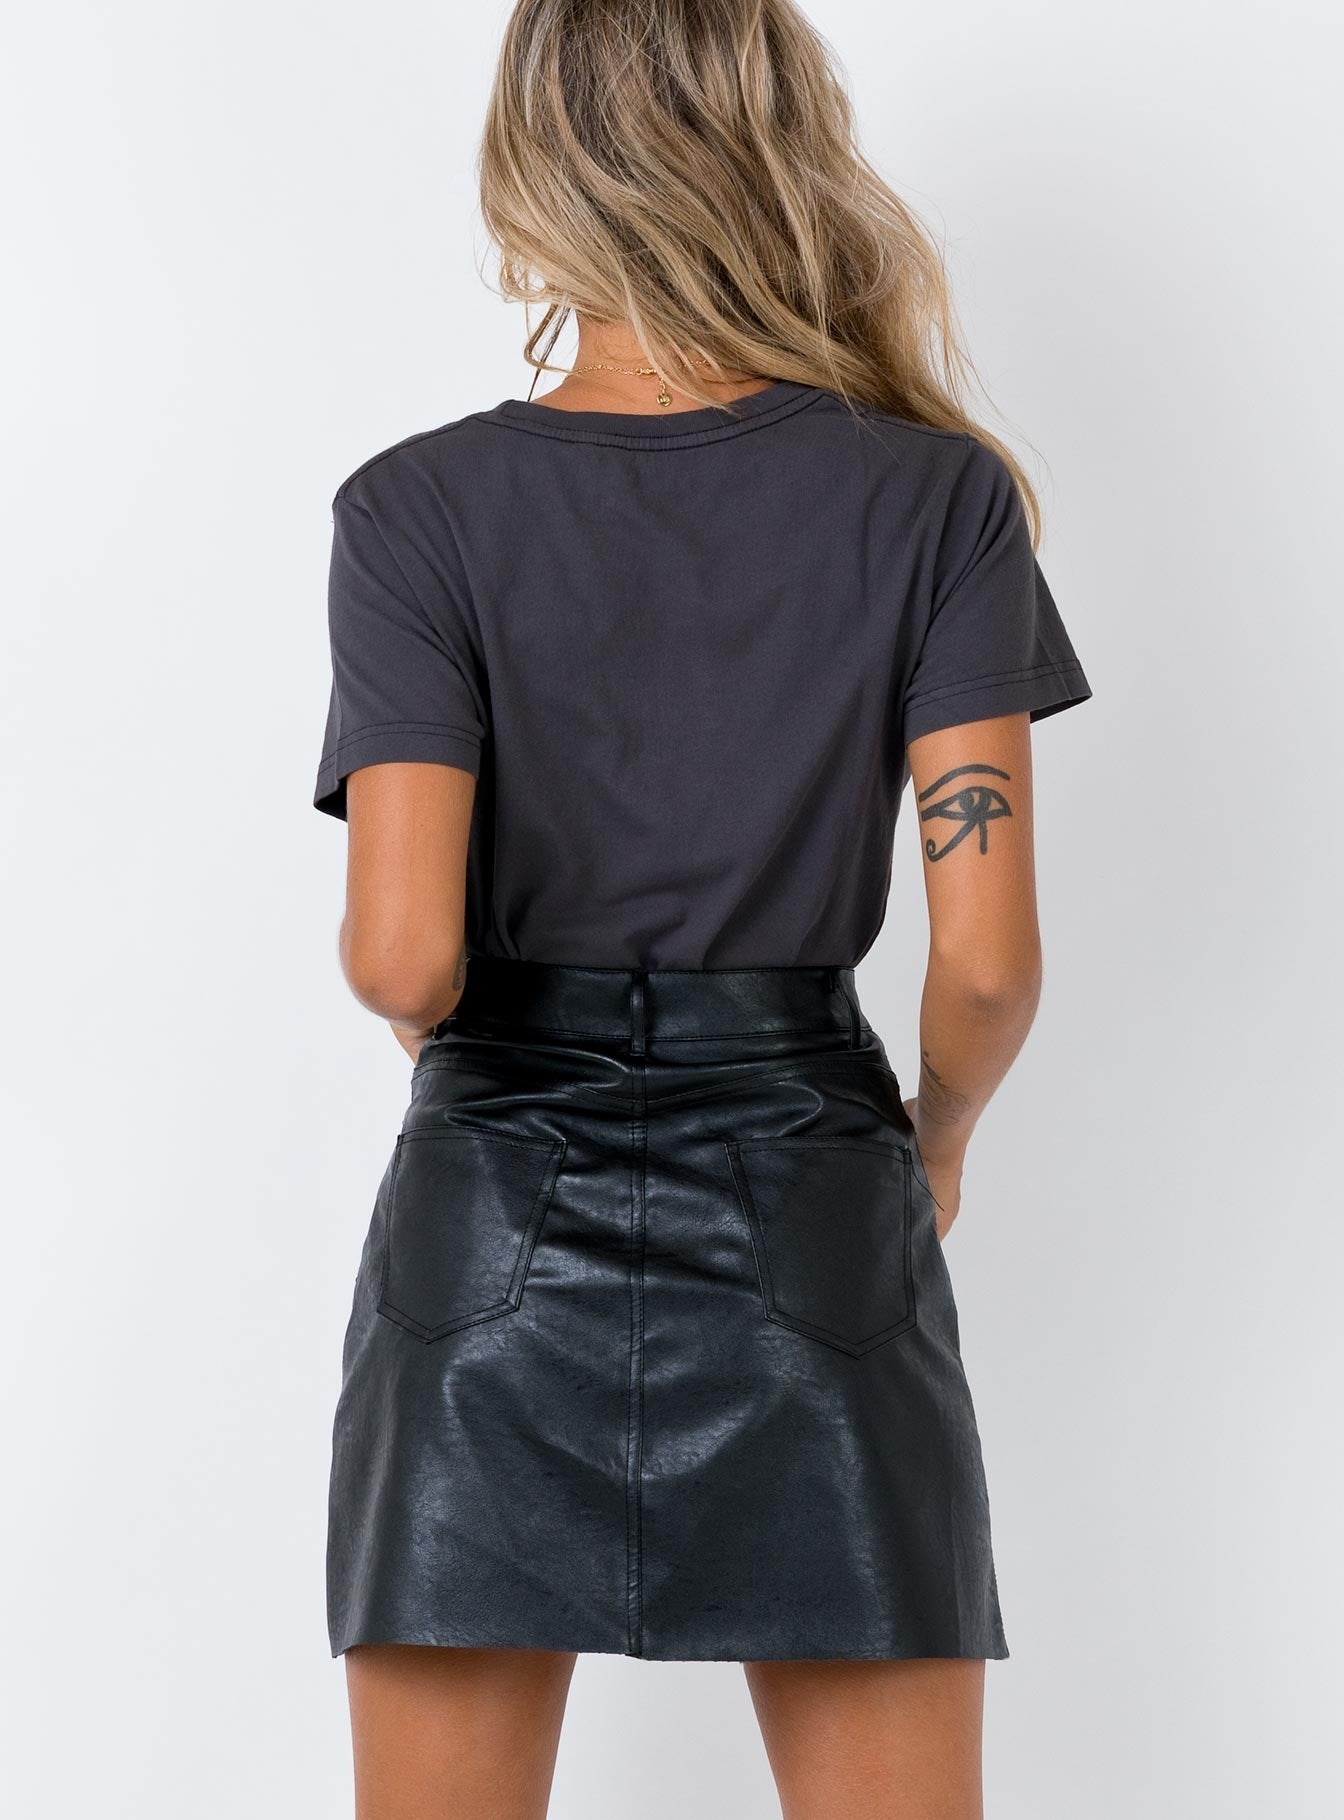 The Holiday Skirt Black